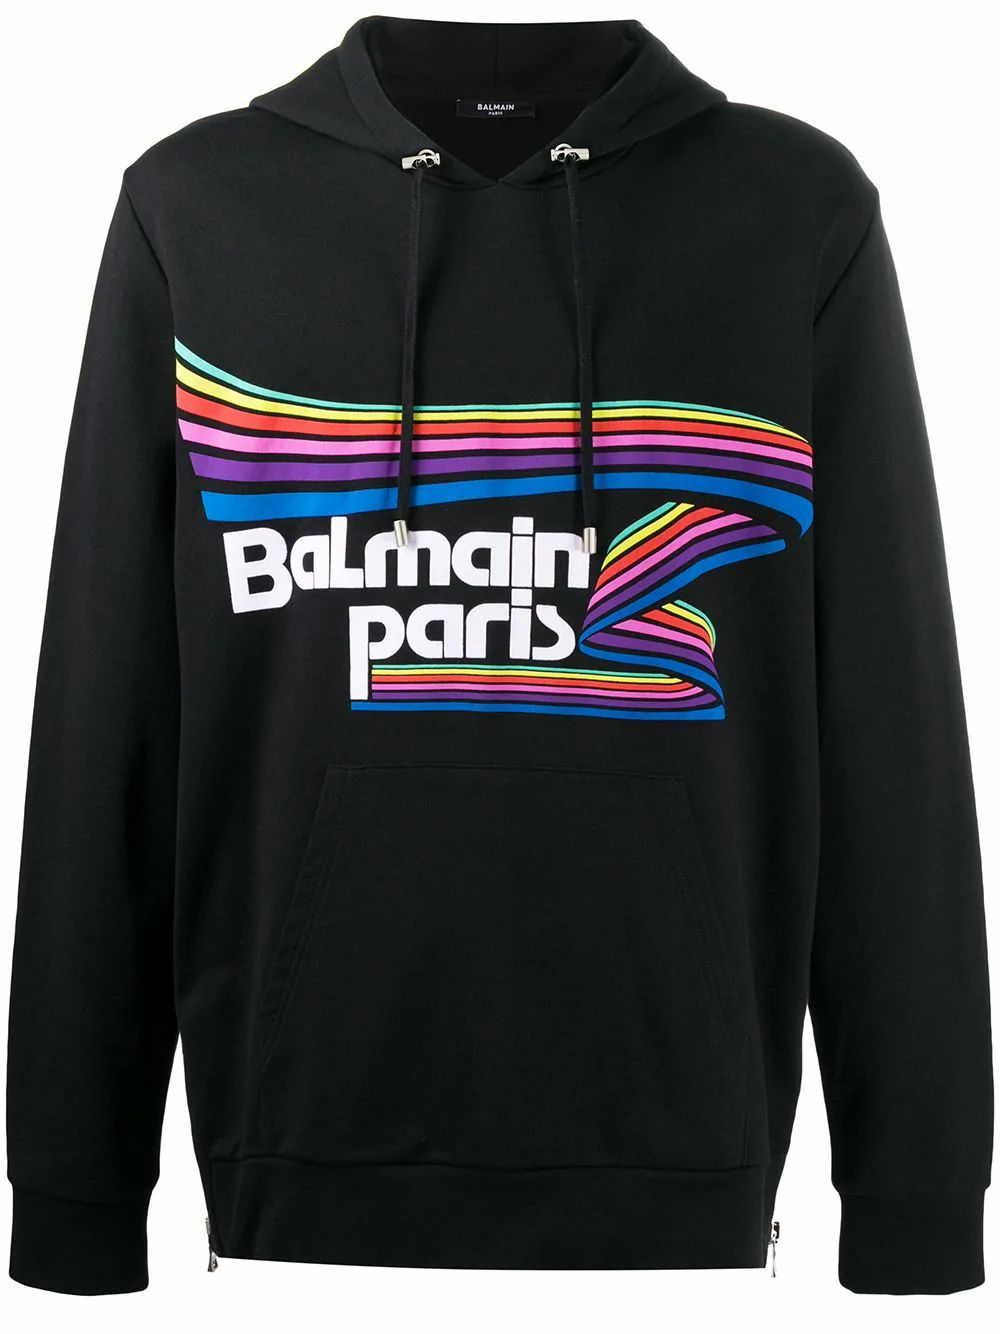 Balmain BALMAIN MEN'S BLACK COTTON SWEATSHIRT